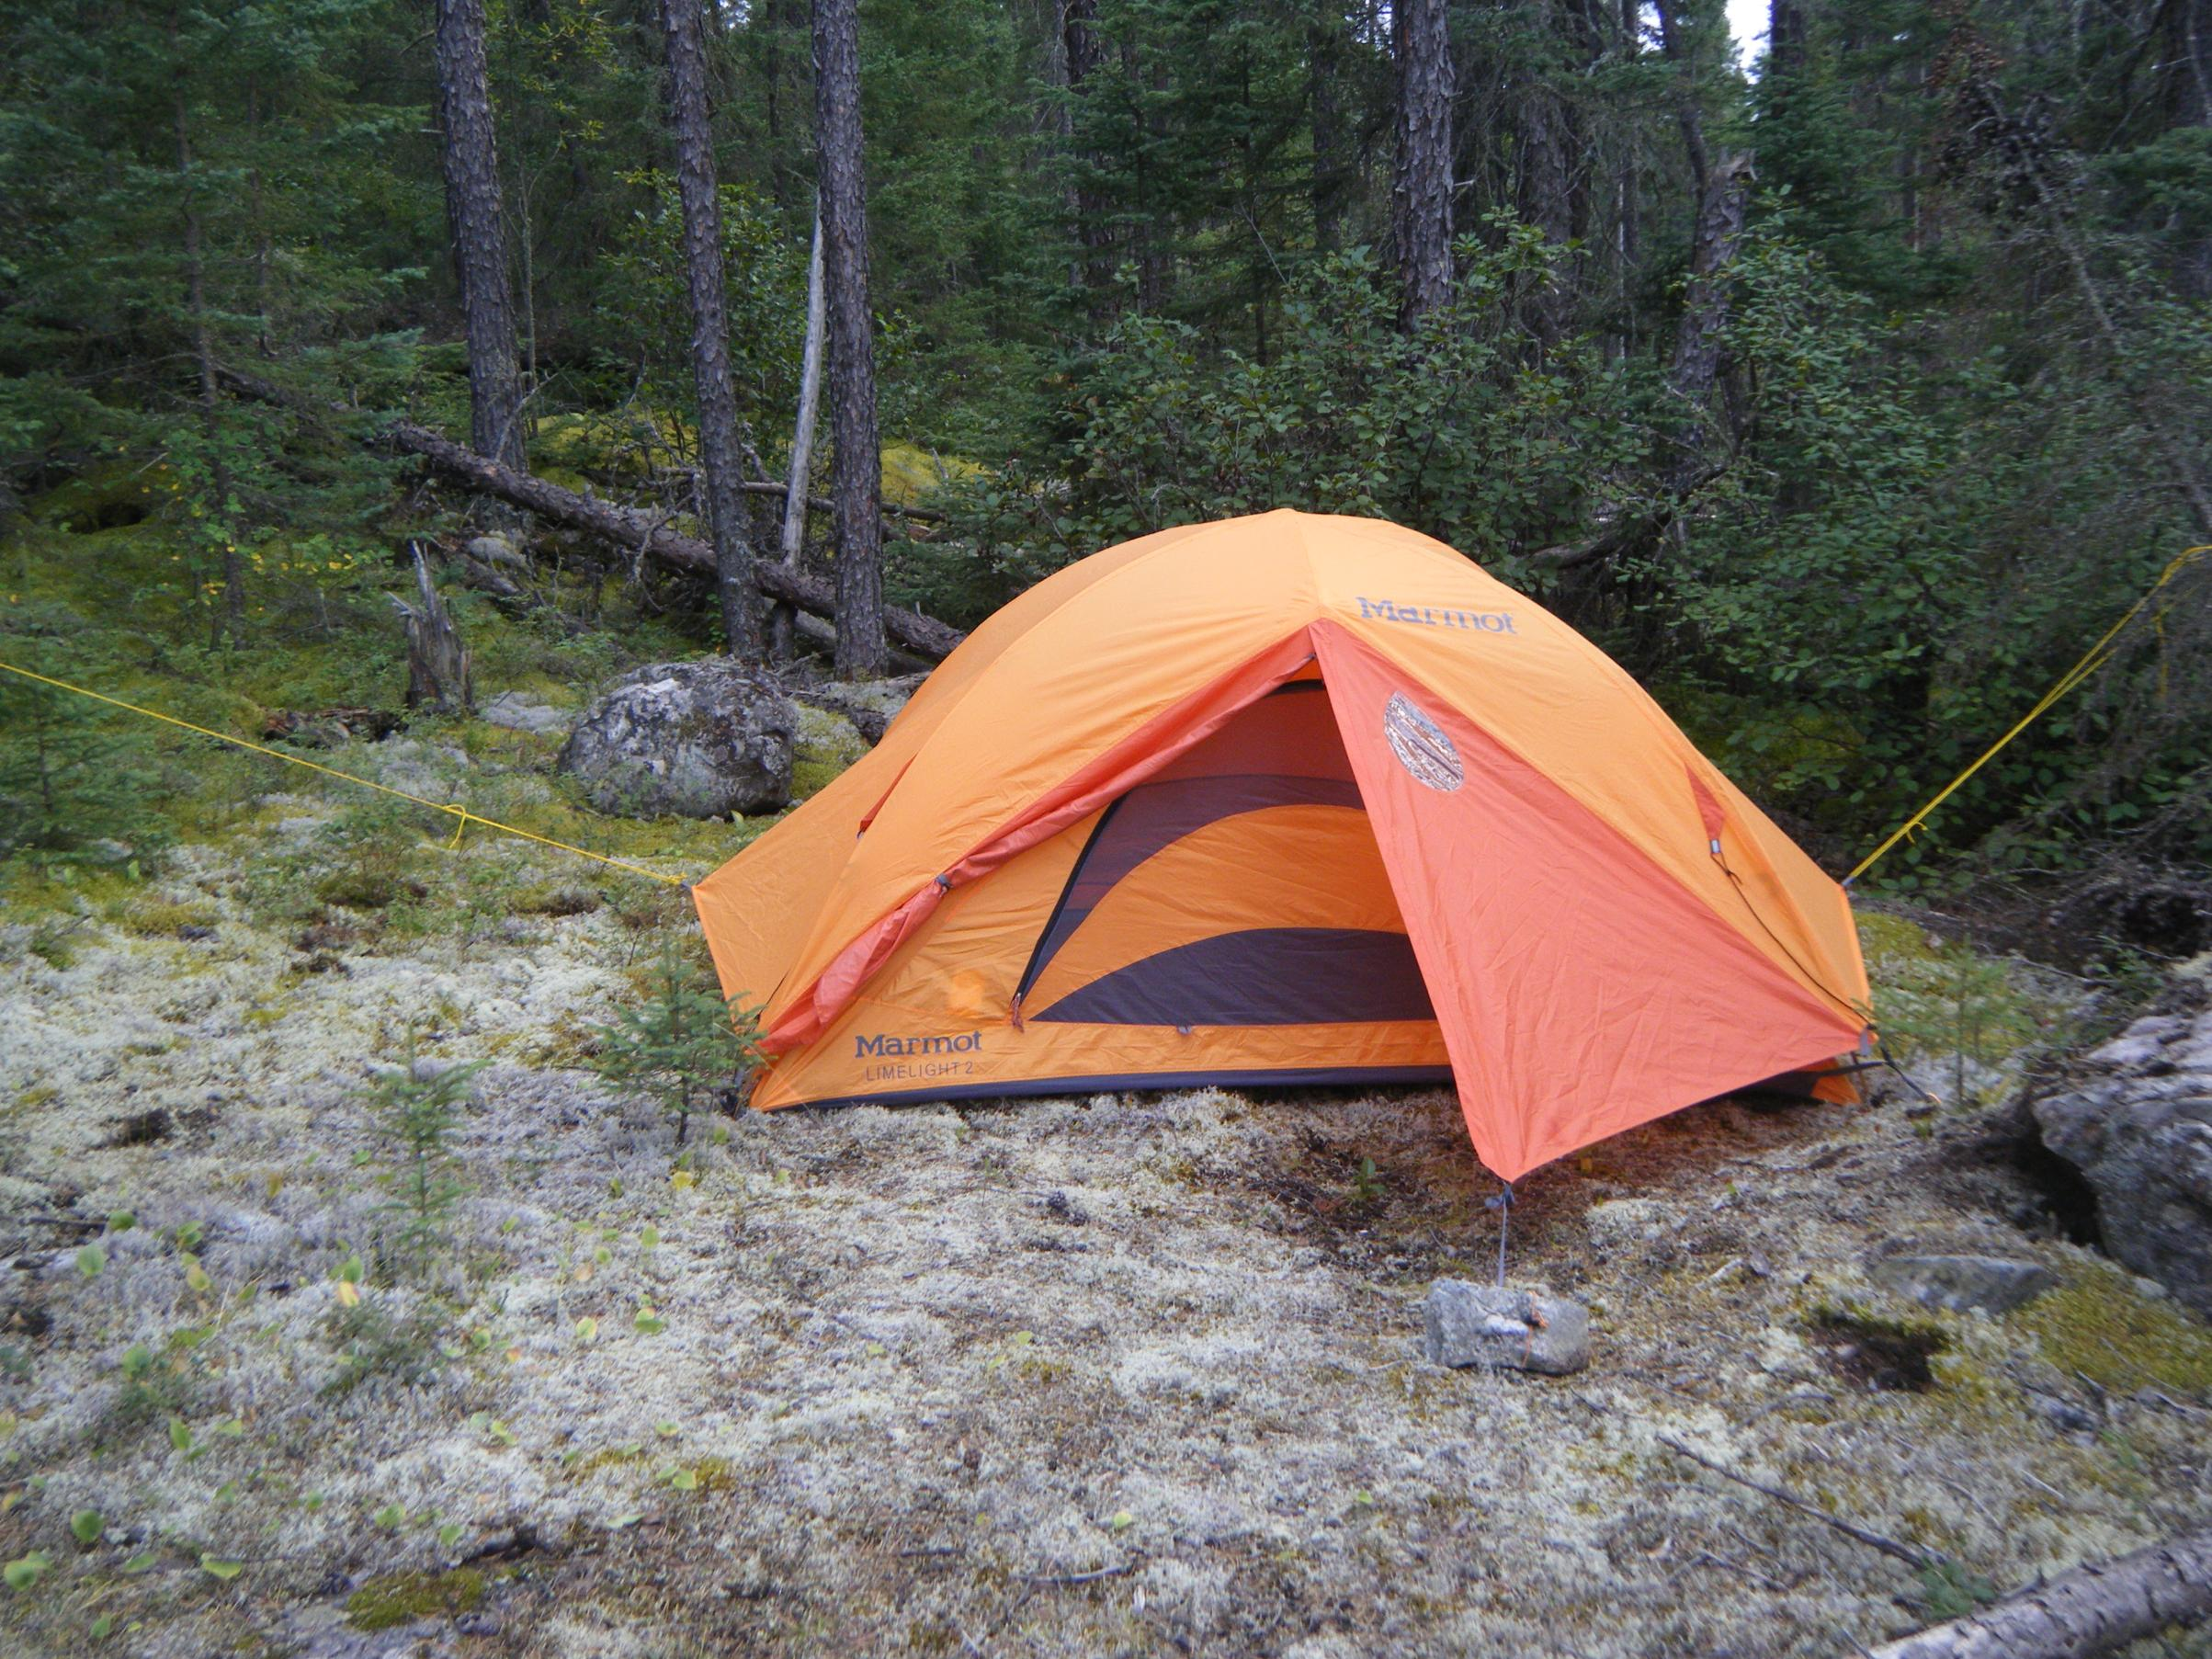 & BWCA Question for Marmot Limelight Owners Boundary Waters Gear Forum